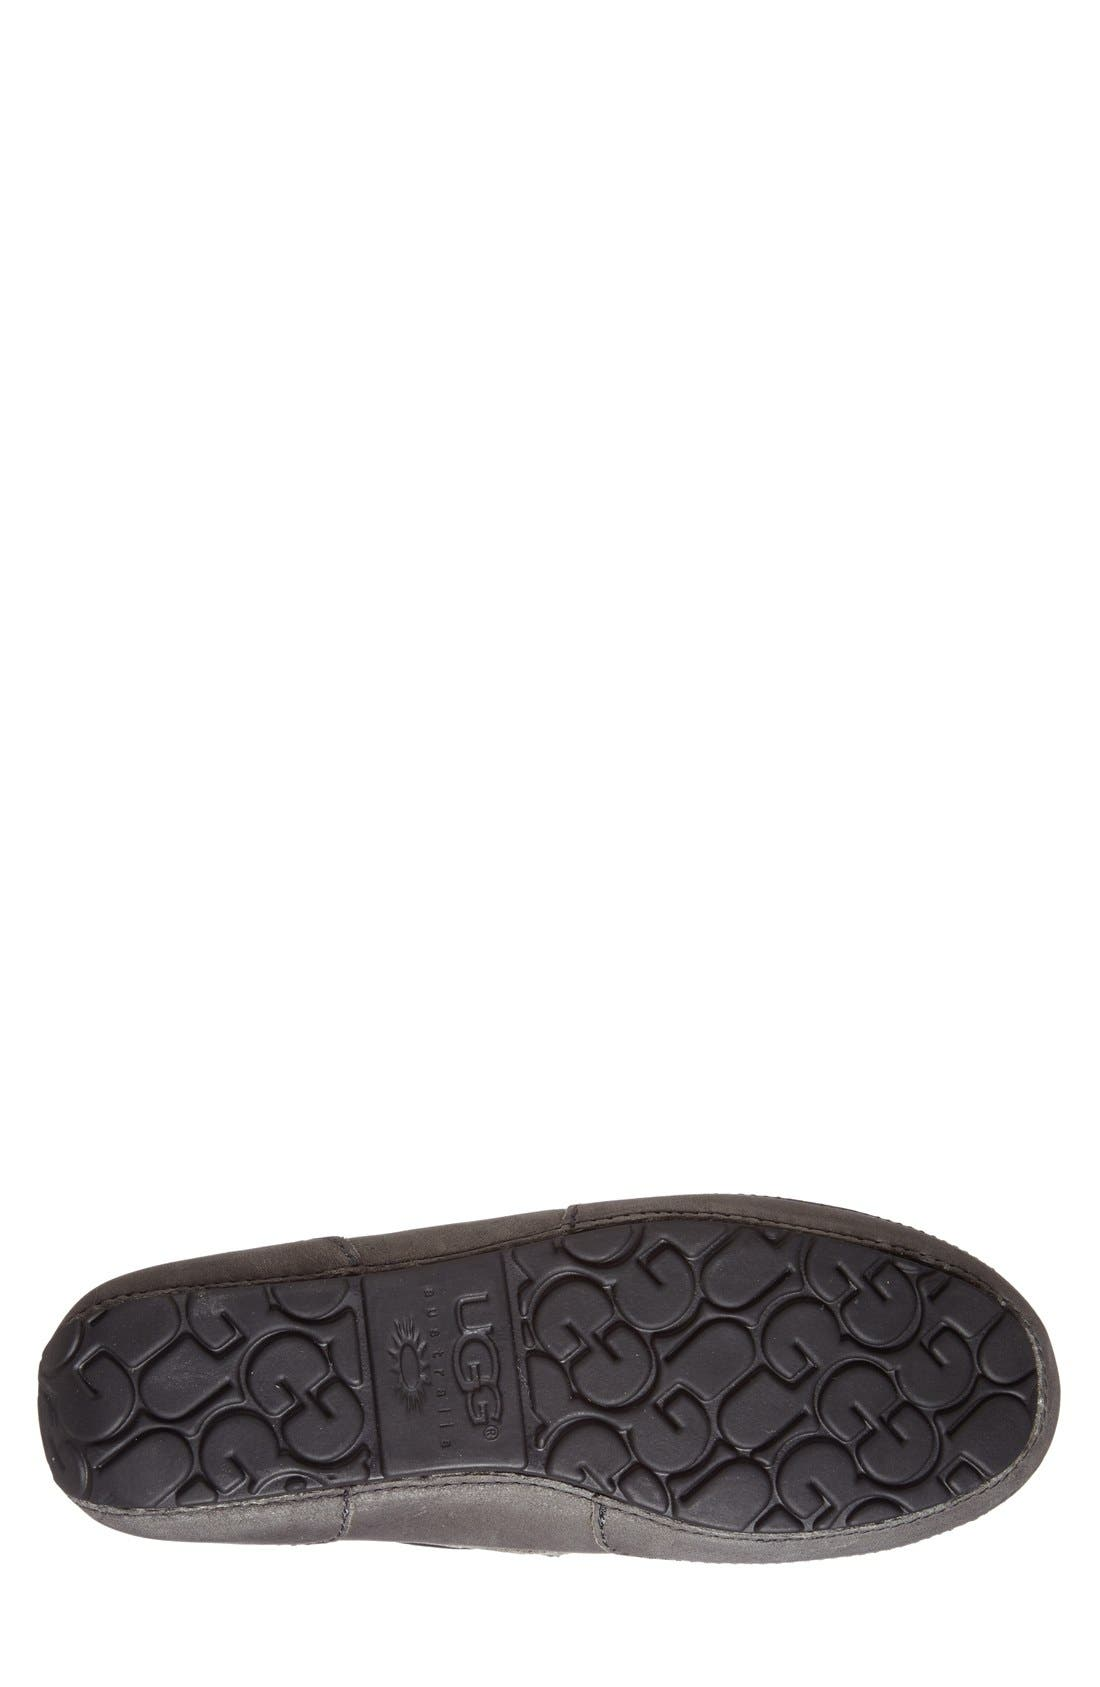 'Chester' Driving Loafer,                             Alternate thumbnail 12, color,